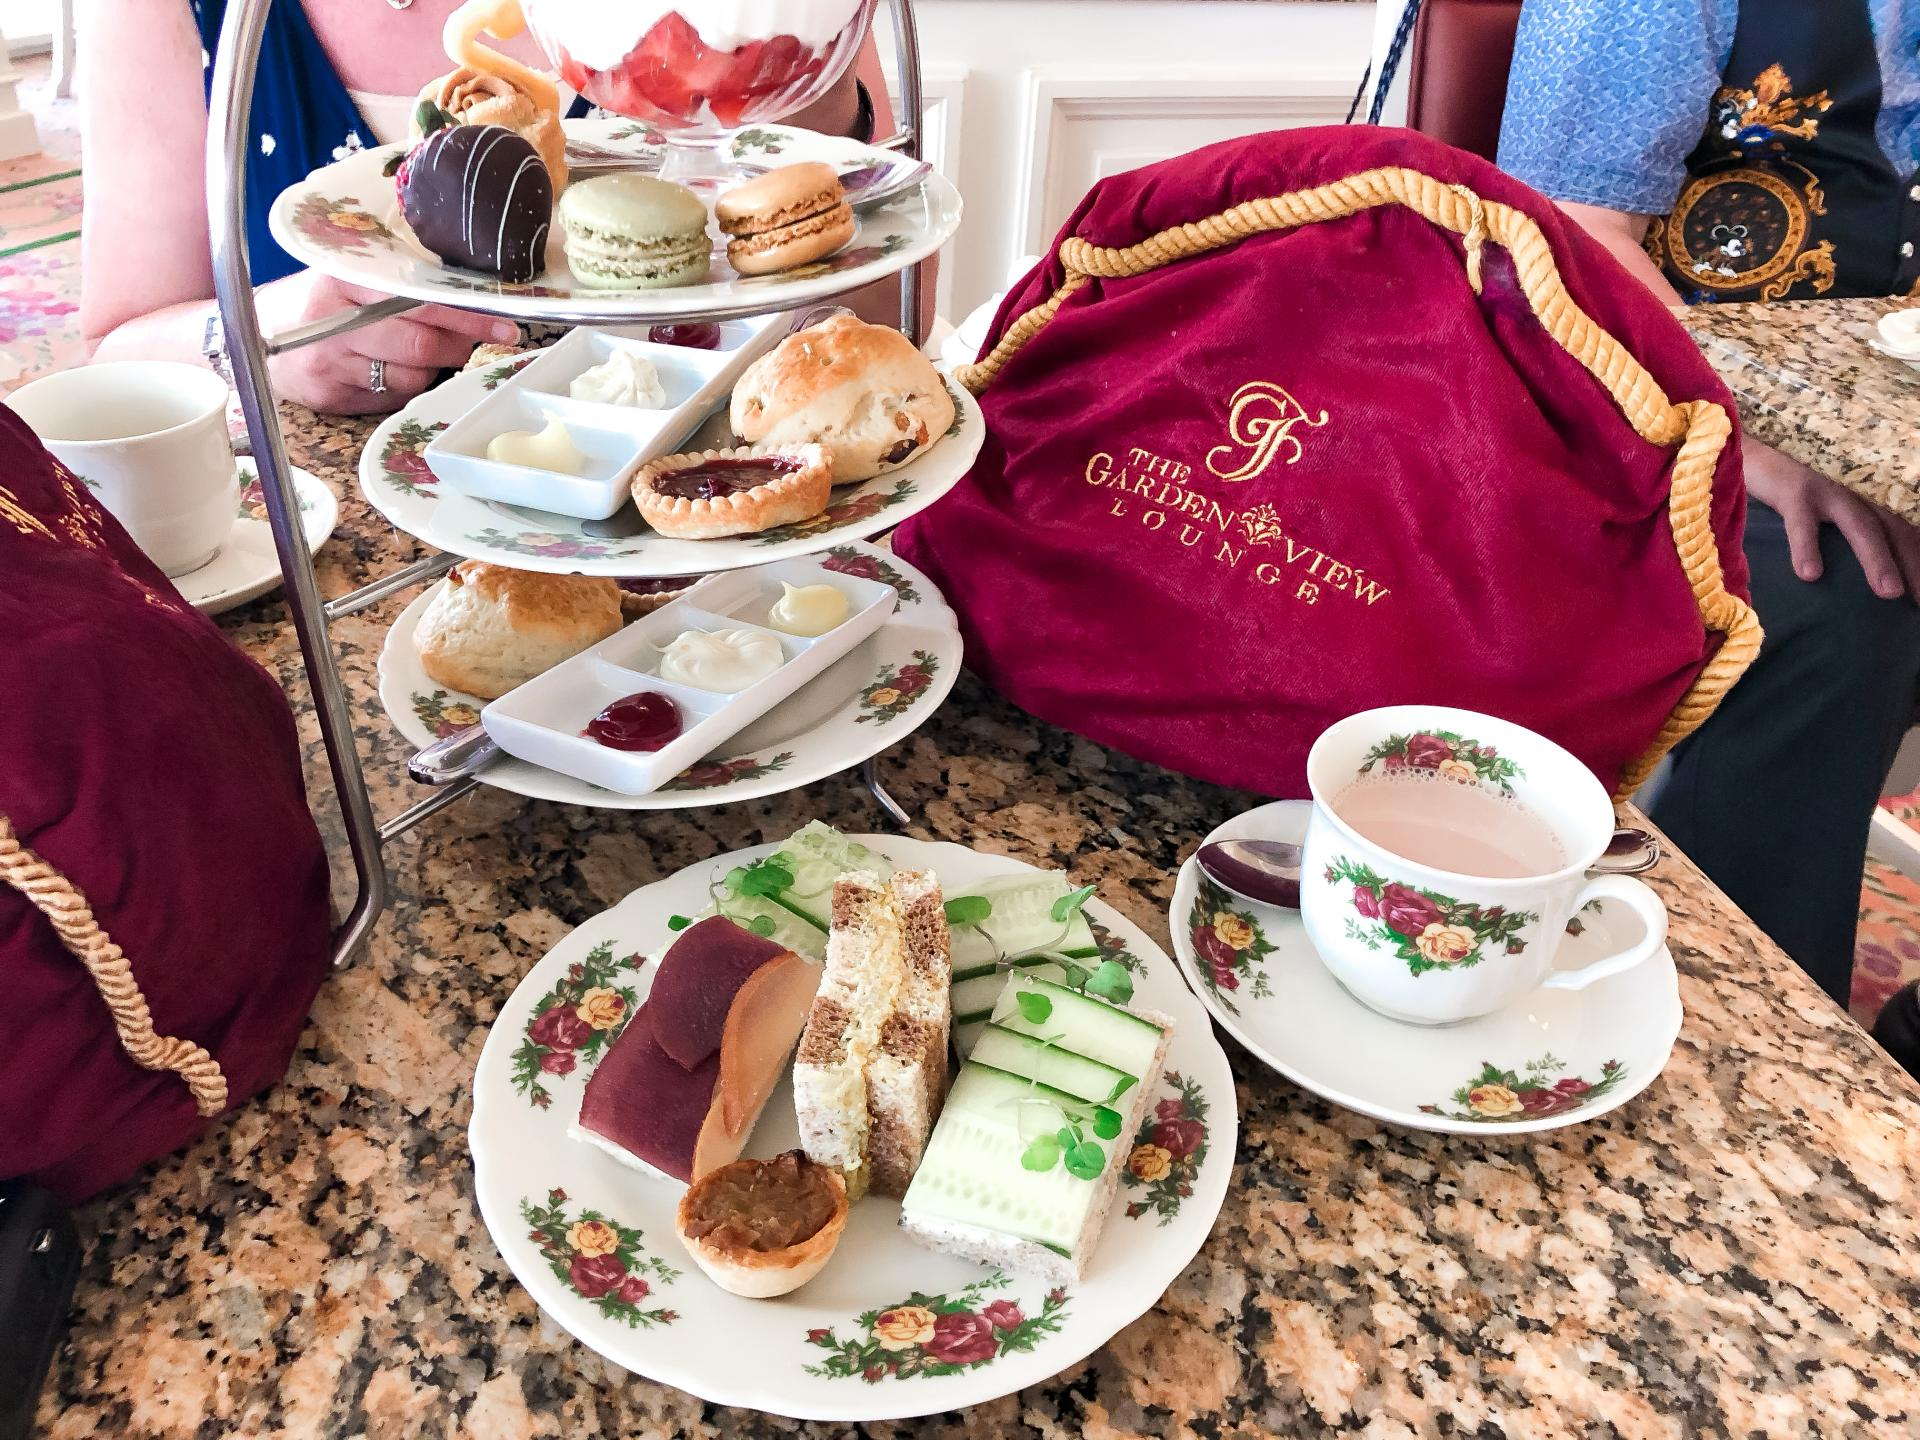 Scones, pastries and sandwiches at Afternoon tea at The Grand Floridian